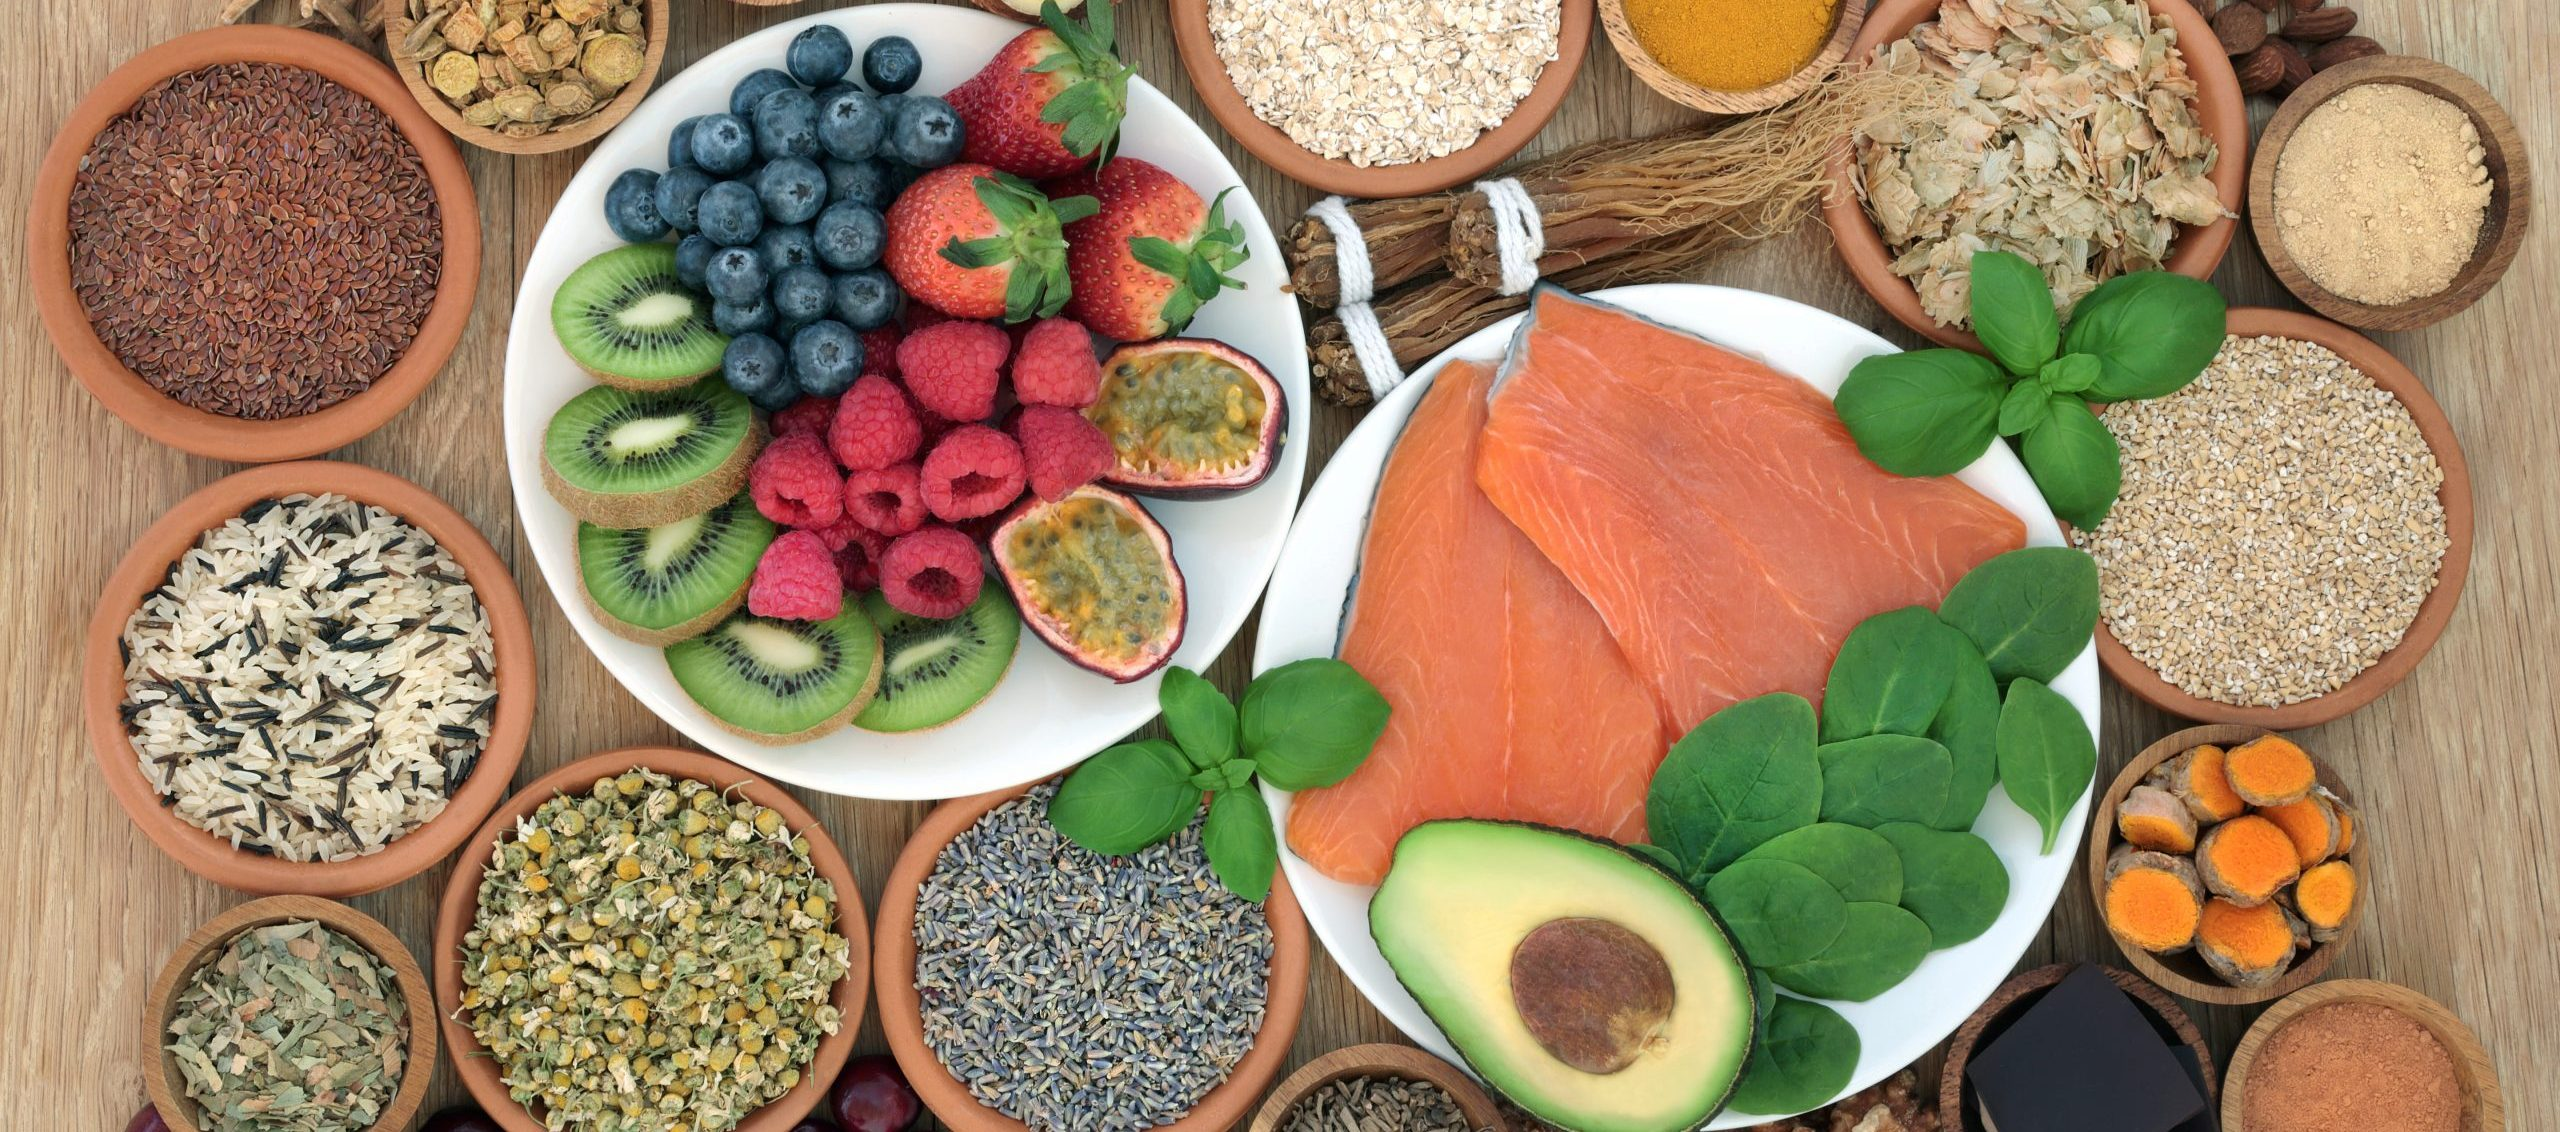 Health food selection with herbal medicine to relieve anxiety and stress that also help relaxation, depression and reduce chronic fatigue. High in omega 3, antioxidants, minerals and vitamins.